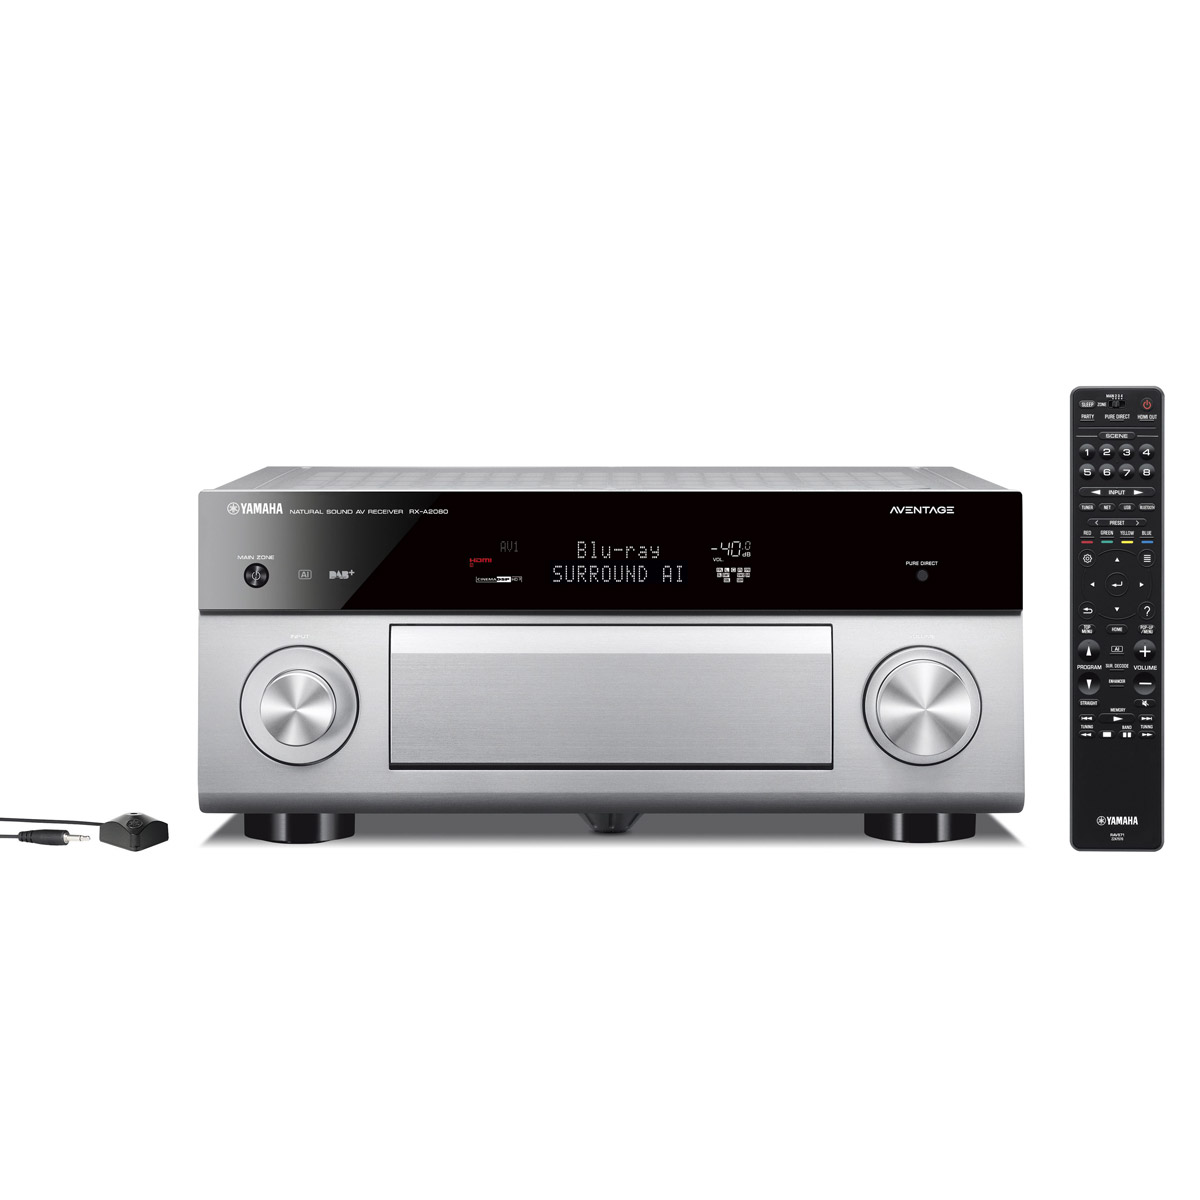 Ampli home cinéma Yamaha RX-A2080 Titane Ampli-tuner Home Cinéma 9.2 3D 140W/canal - Dolby Atmos/DTS:X - 7x HDMI HDCP 2.2 Ultra HD 4K - Wi-Fi/Bluetooth/DLNA/AirPlay - MusicCast/MusicCast Surround - A.R.T. Wedge - Calibration YPAO RSC